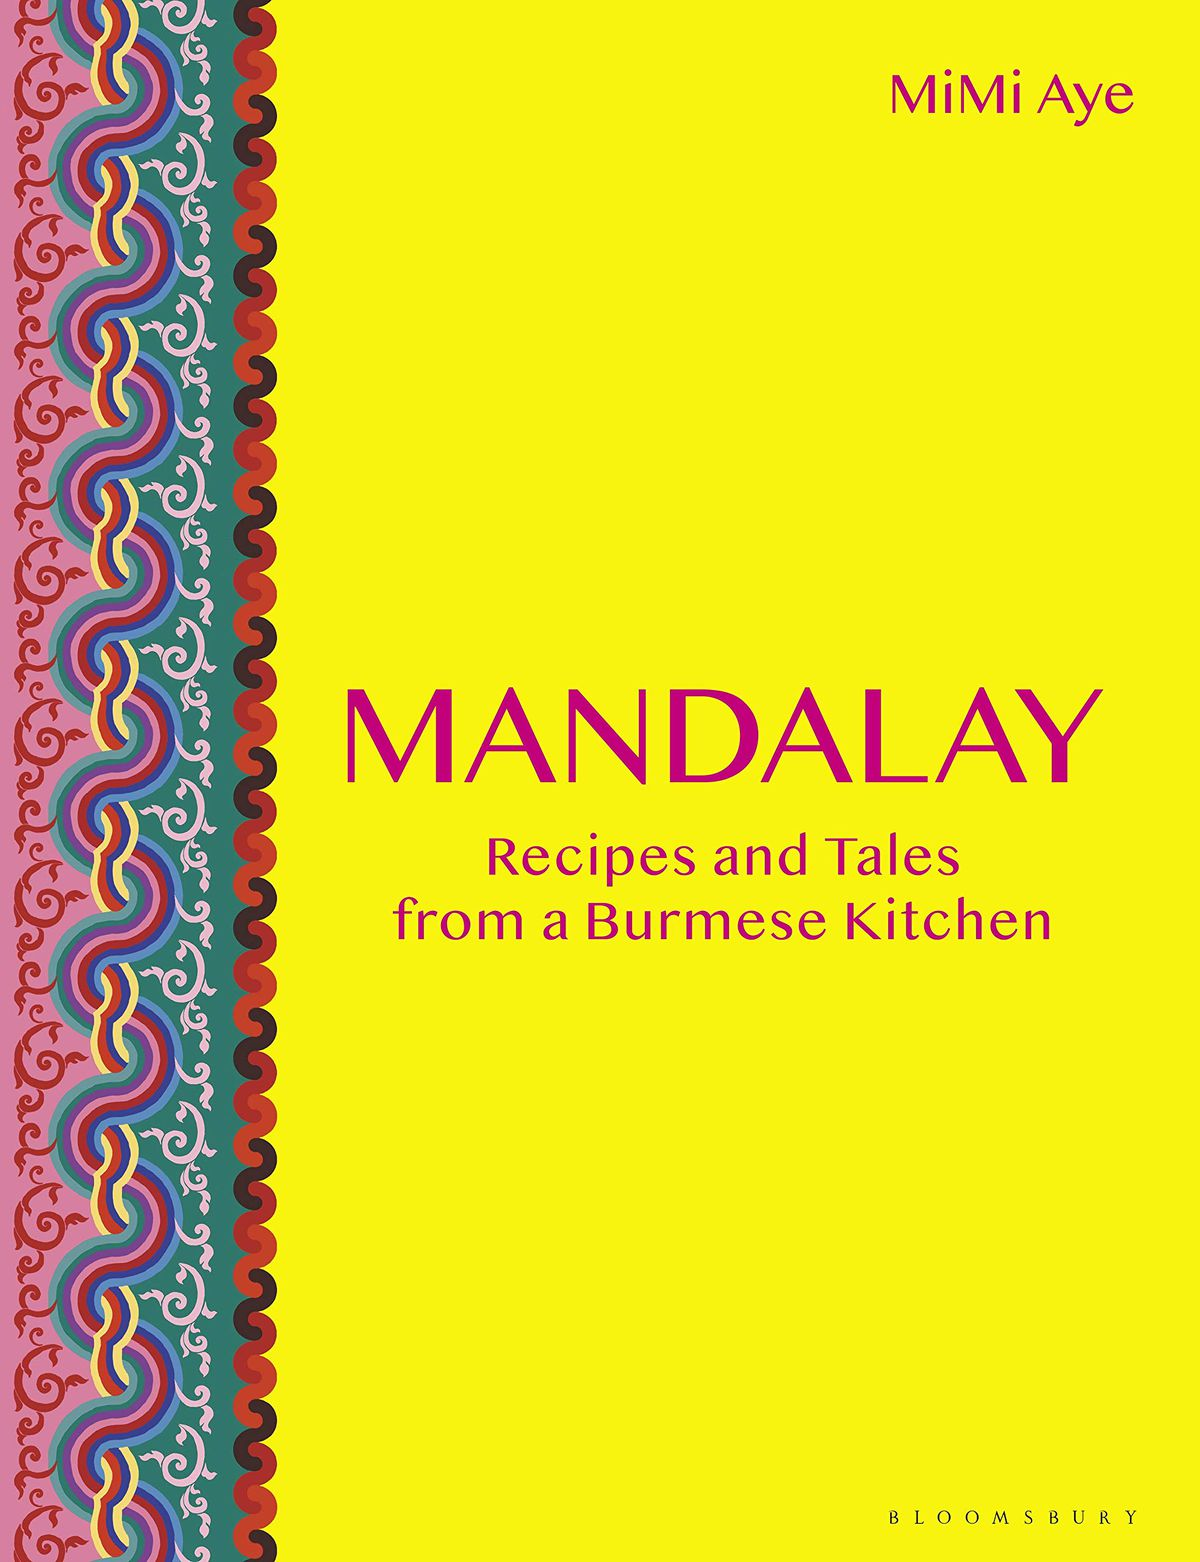 Mandalay by MiMi Aye, one of the best cookbooks chosen by Eater writers